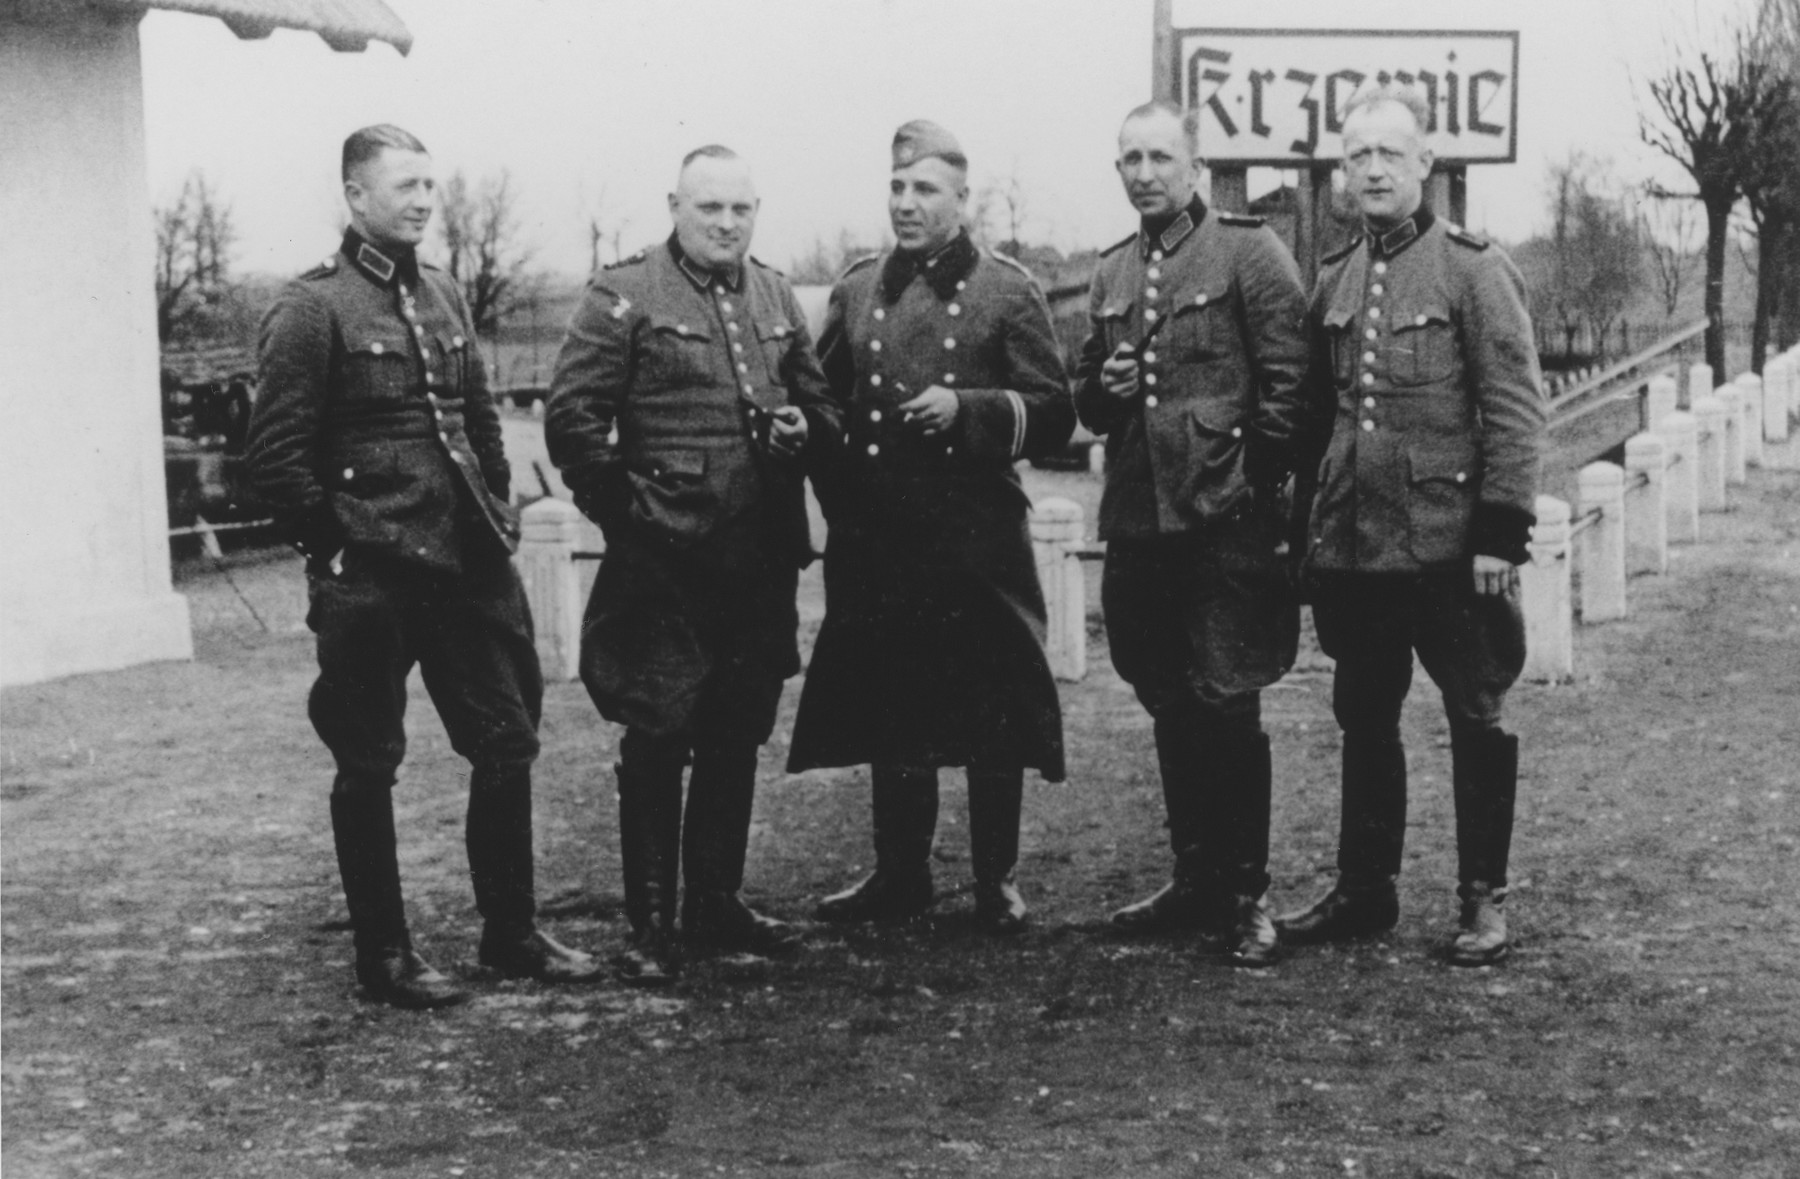 Group portrait of members of Police Battalion 101 beneath a sign that reads Krzewie.  One image from a photograph album belonging to a member of Police Battalion 101.